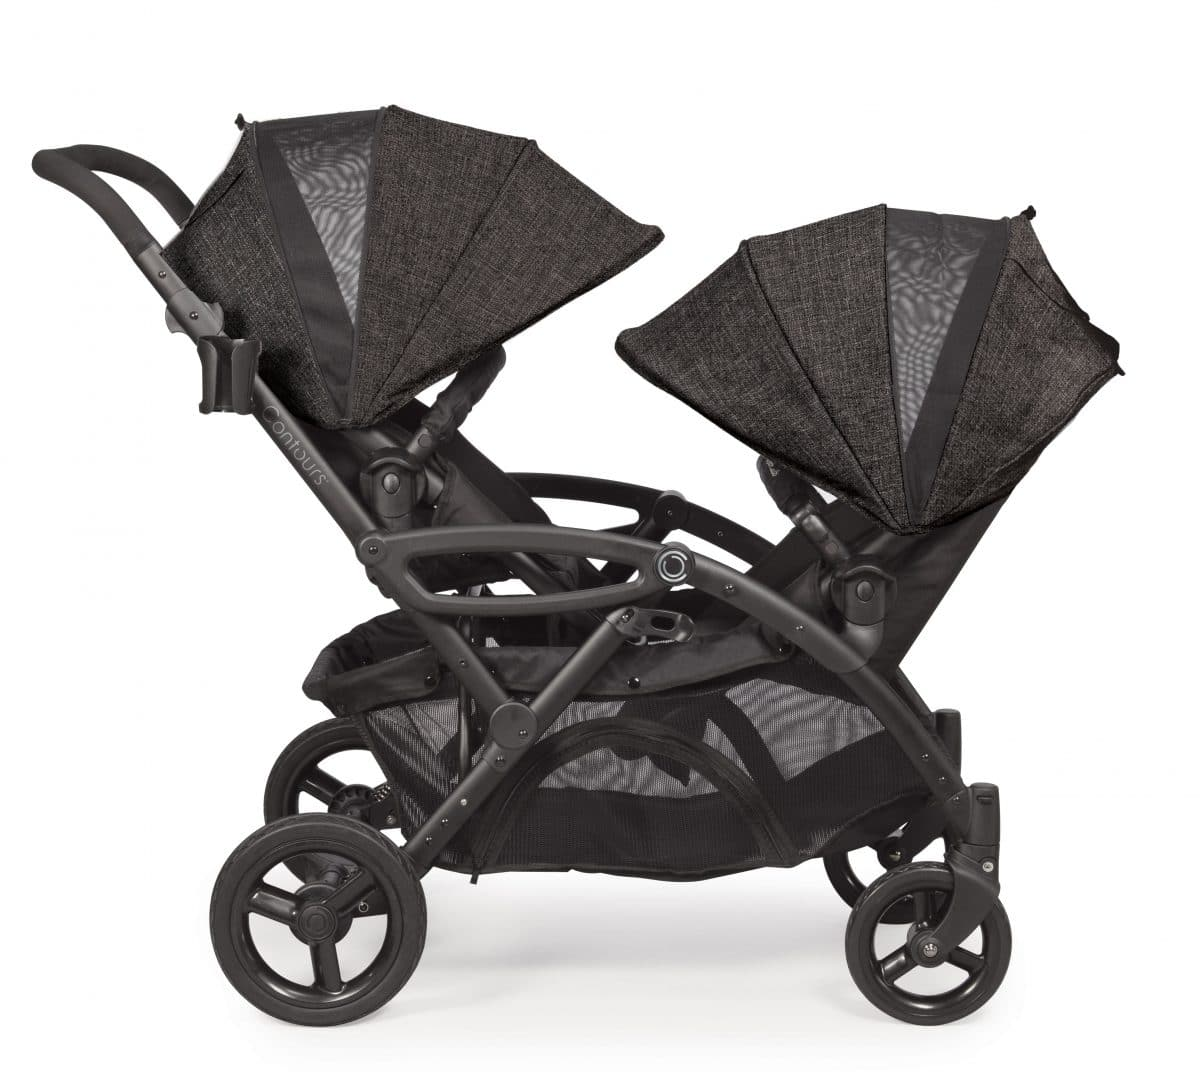 Britax Double Pushchair Reviews The 10 Best Double Strollers To Buy 2019 Littleonemag